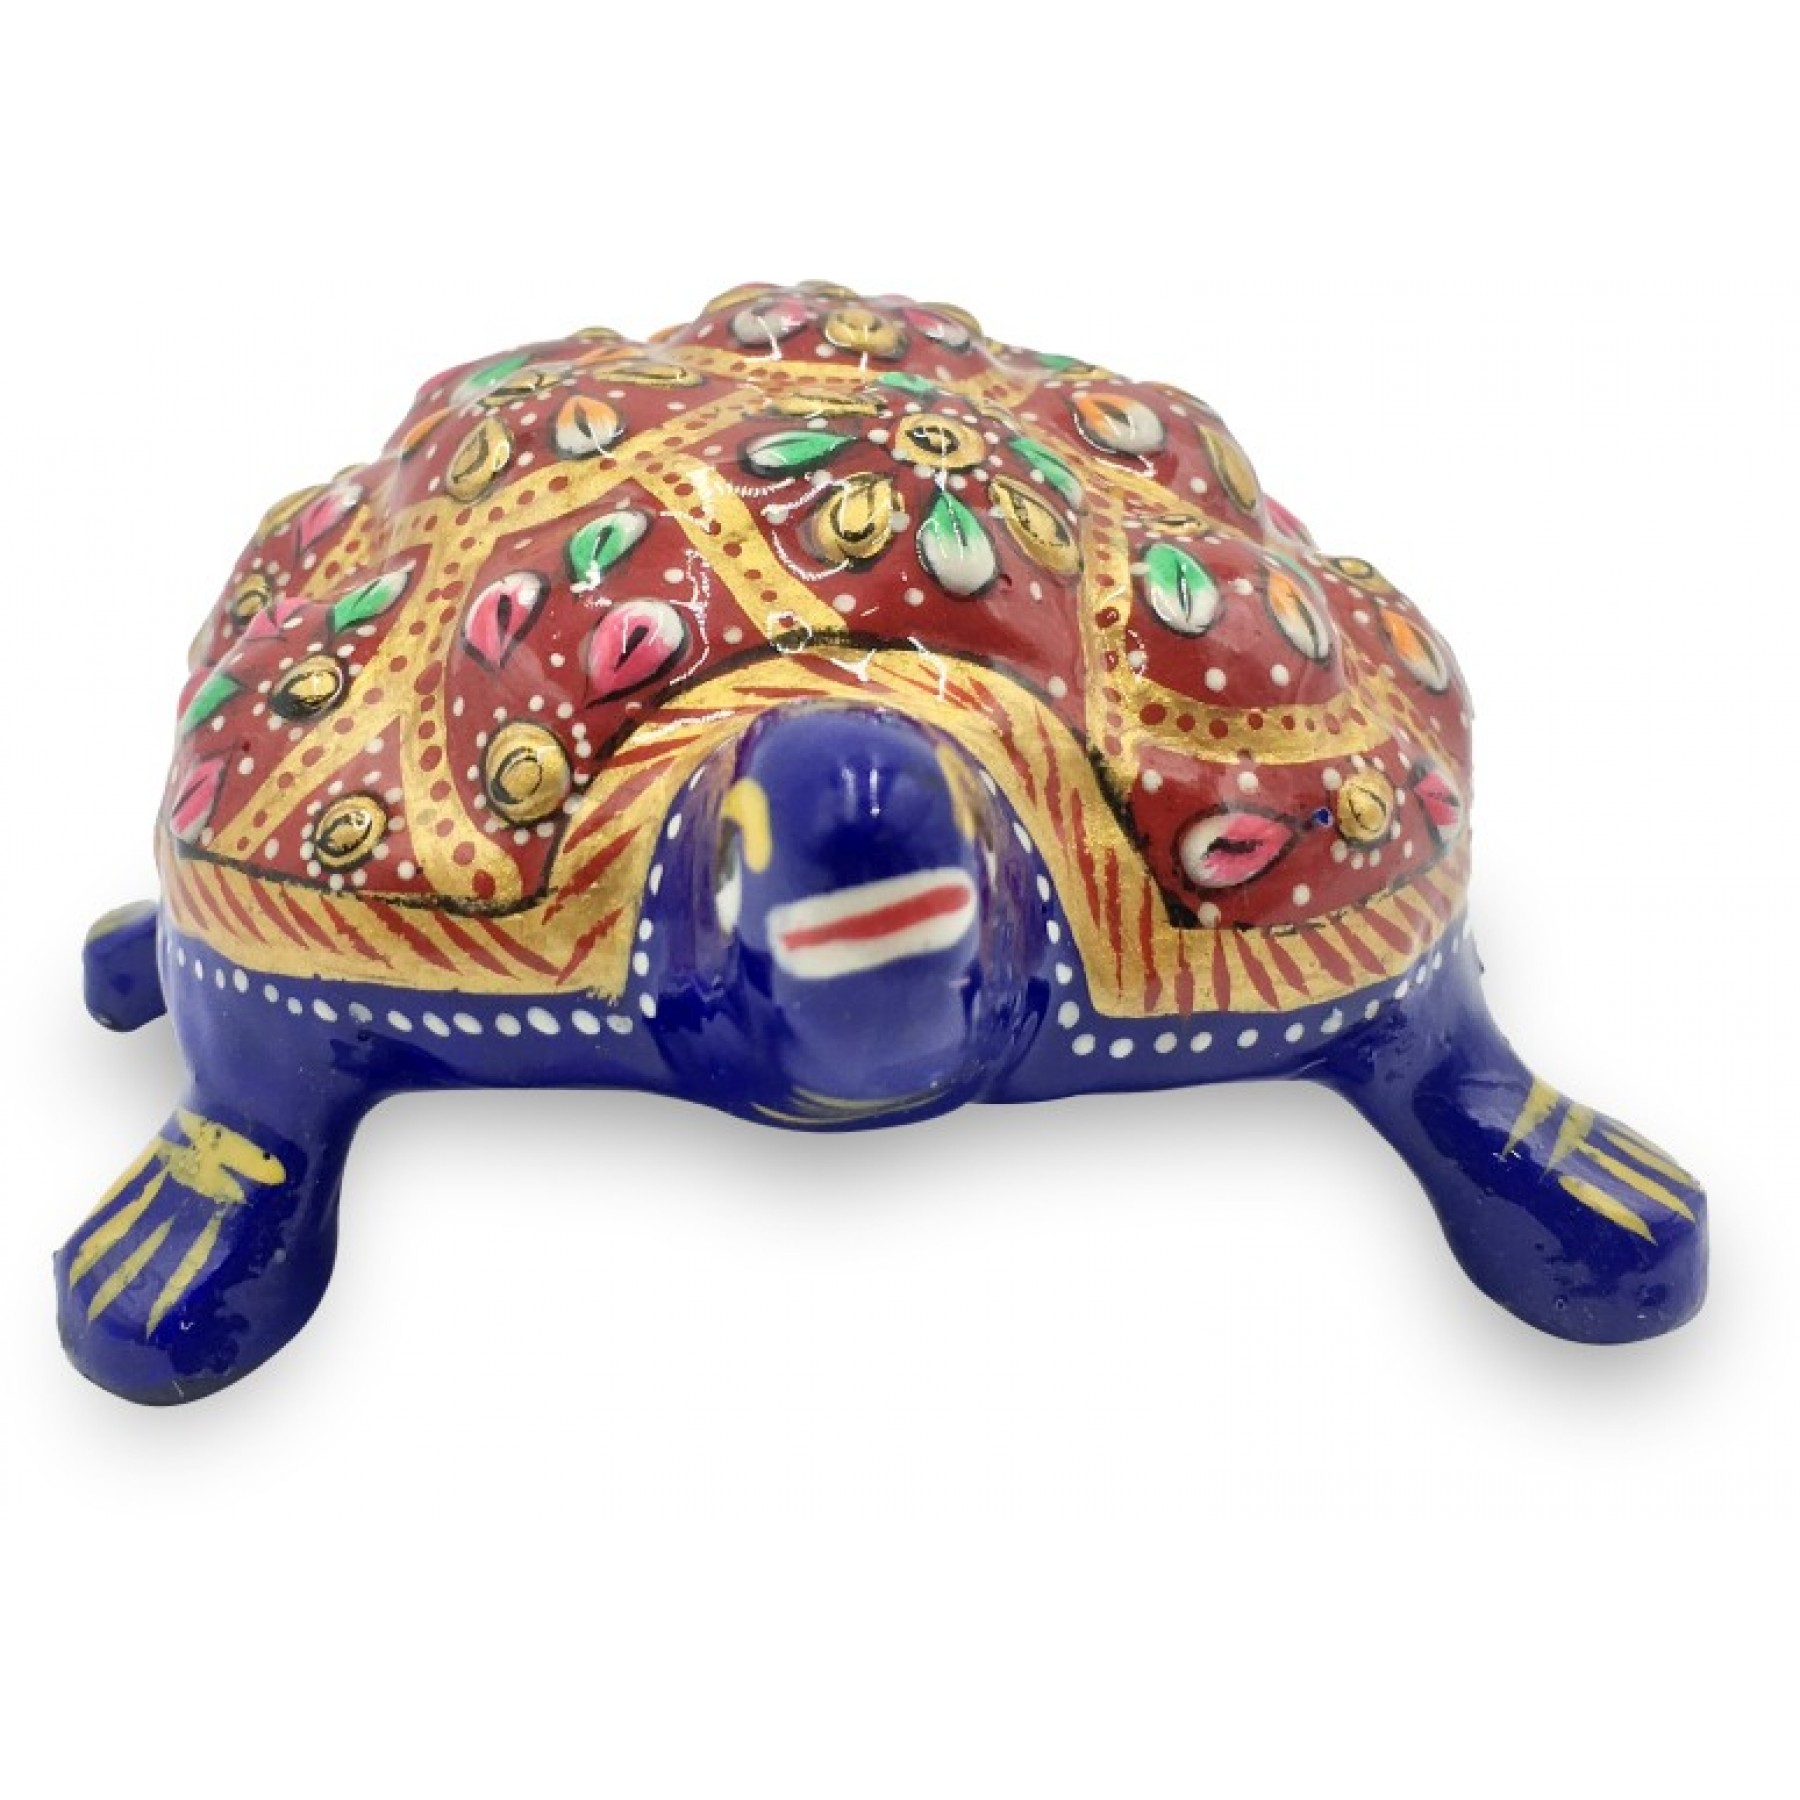 Tortoise Made In Metal And Hand Painted With Deco Paint   Home Decor  Handicraft